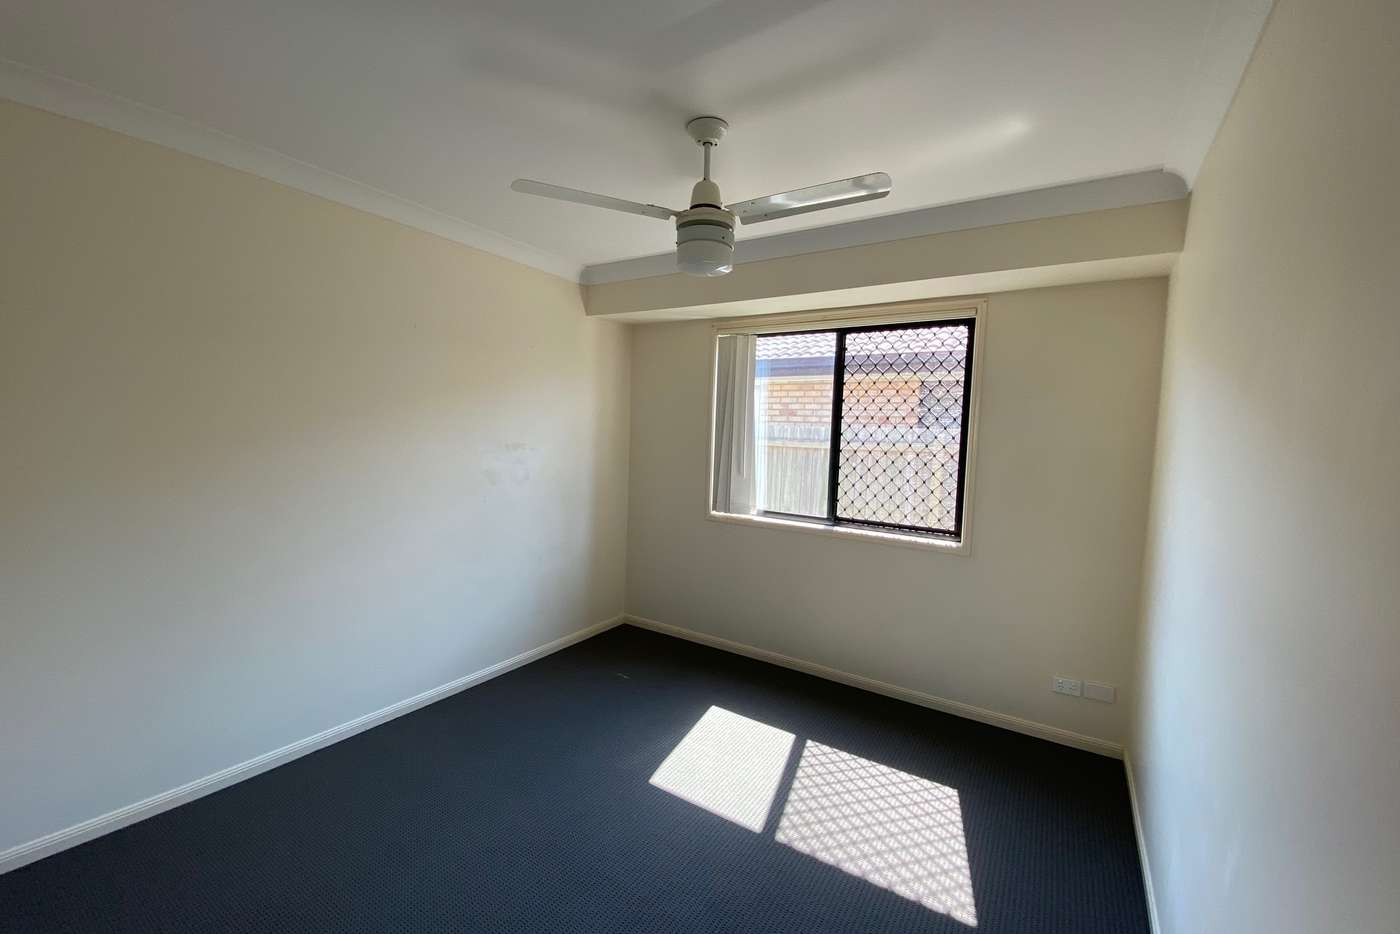 Seventh view of Homely house listing, 4 Tuohy Court, Rothwell QLD 4022